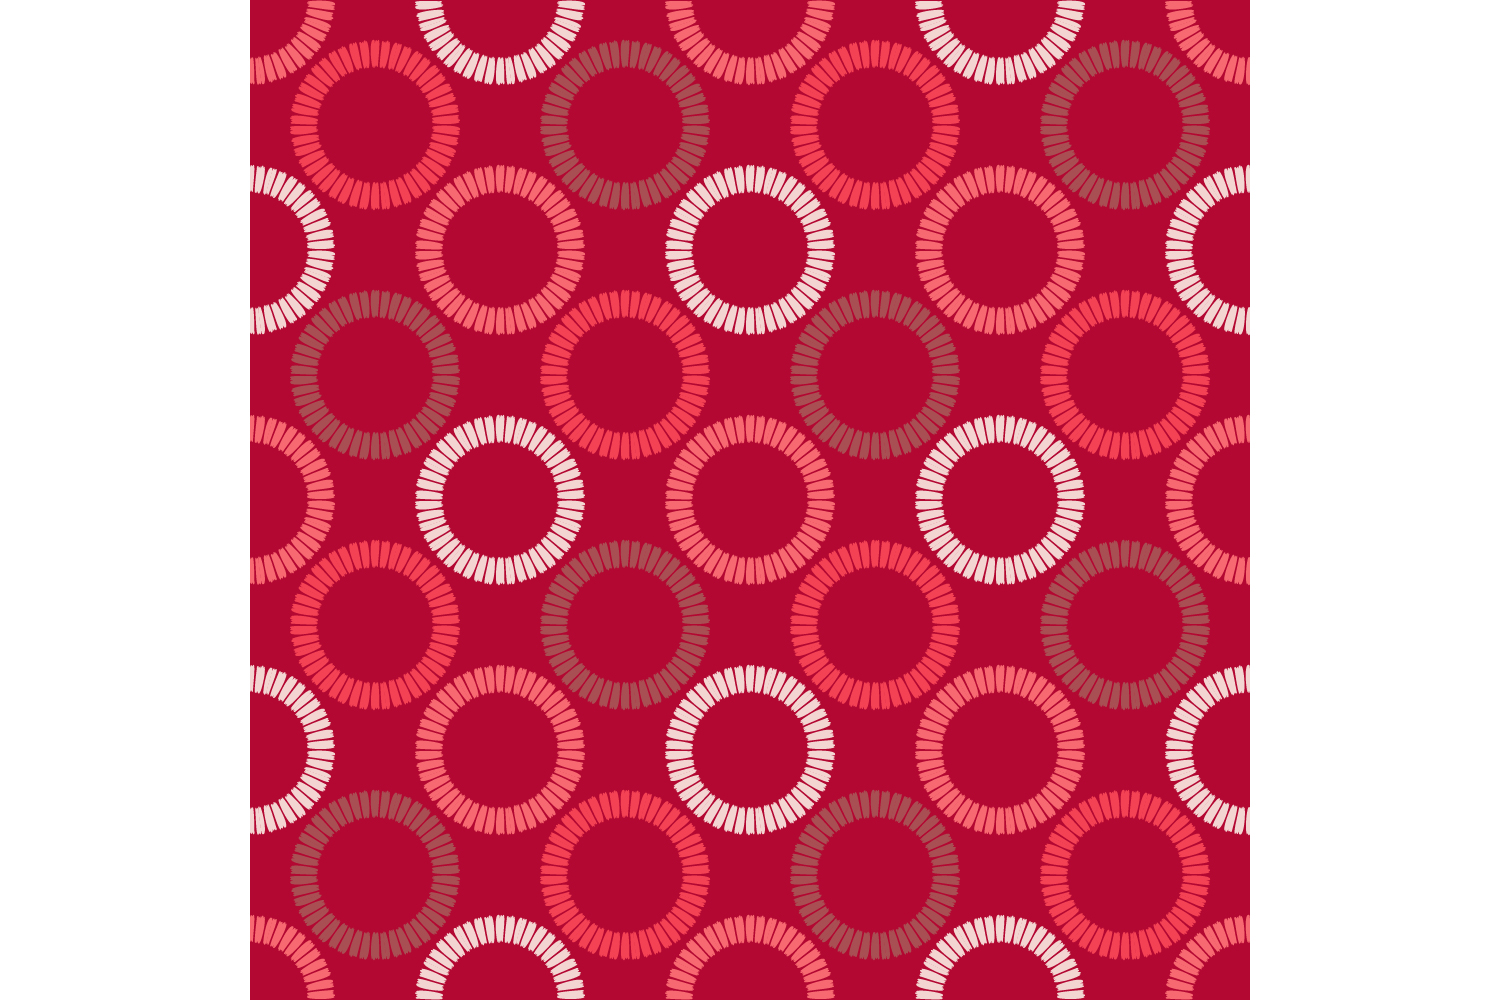 Polka dots ornament. Set of 10 seamless patterns. example image 10